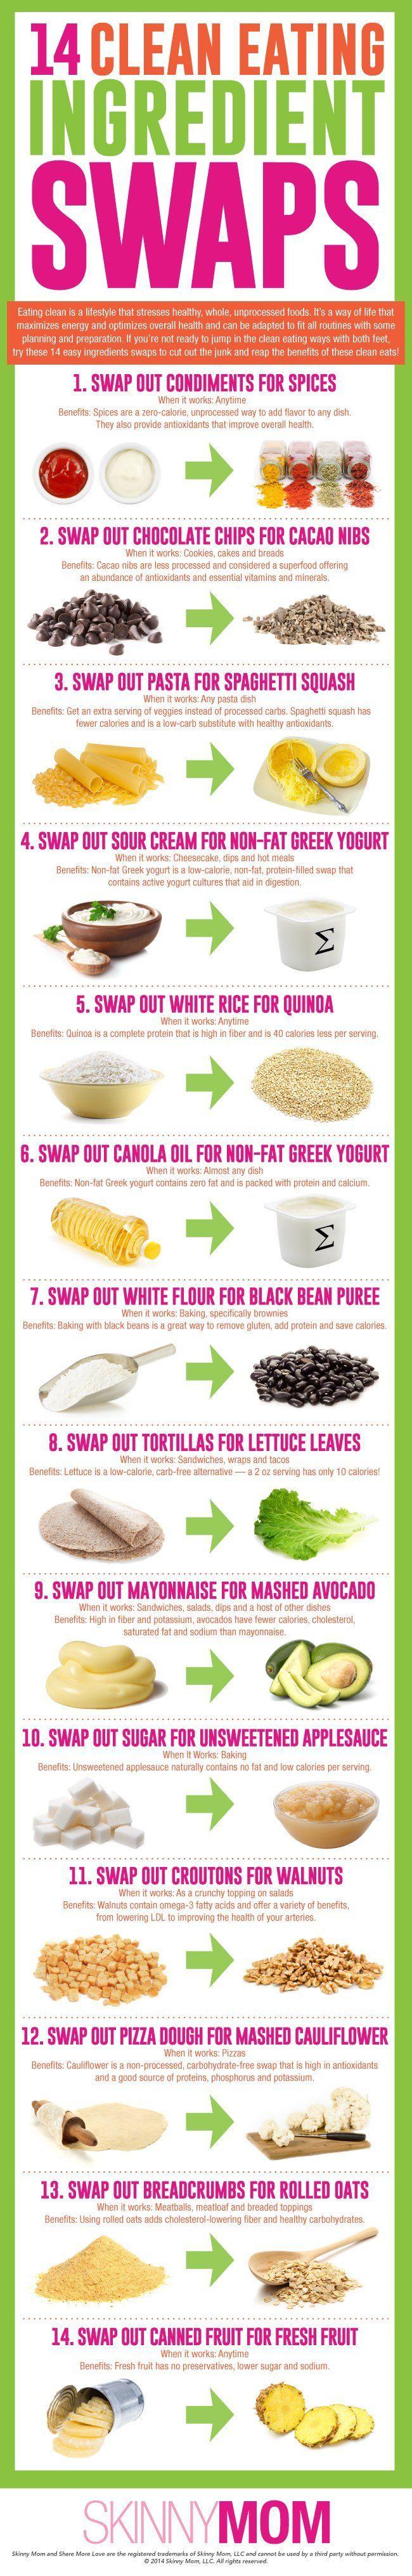 8 Clean Eating Tips | Skinny Mom | Where Moms Get the Skinny on Healthy Living